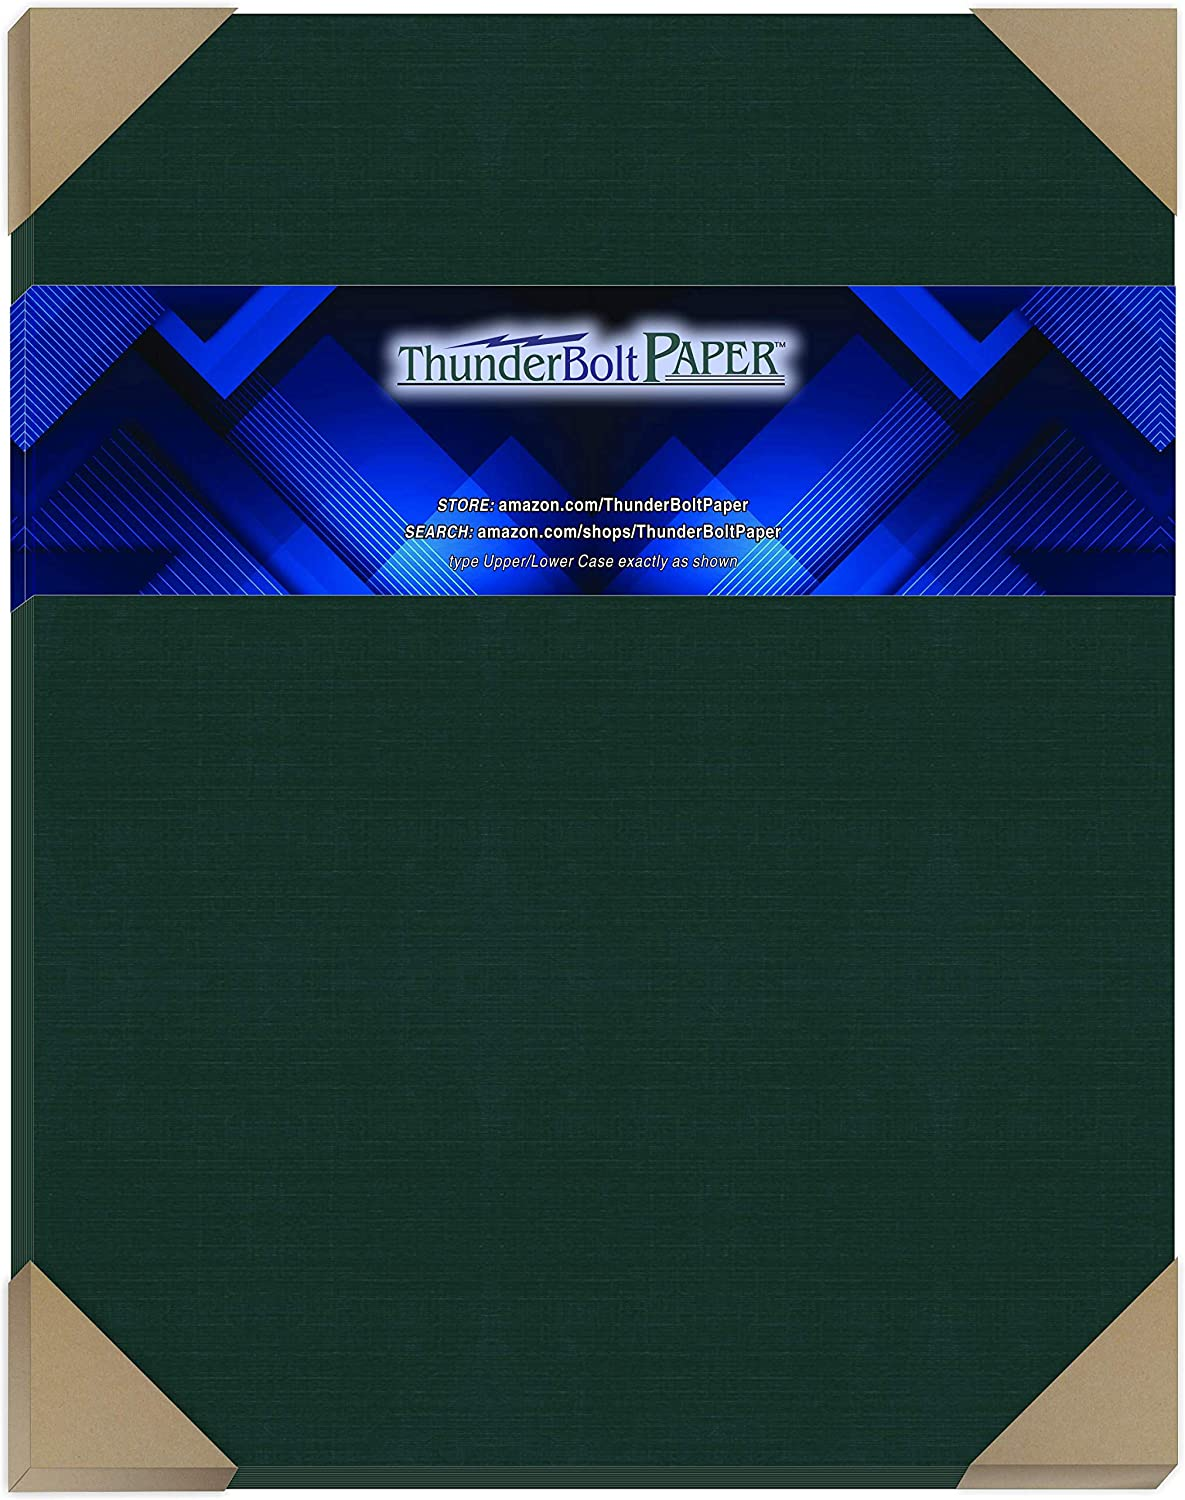 Standard Letter|Flyer Size Fine Linen Textured Finish 80 lb//Pound Card Weight 8.5 X 11 150 Dark Green Linen 80# Cover Paper Sheets 8.5X11 Inches Deep Dye Quality Cardstock